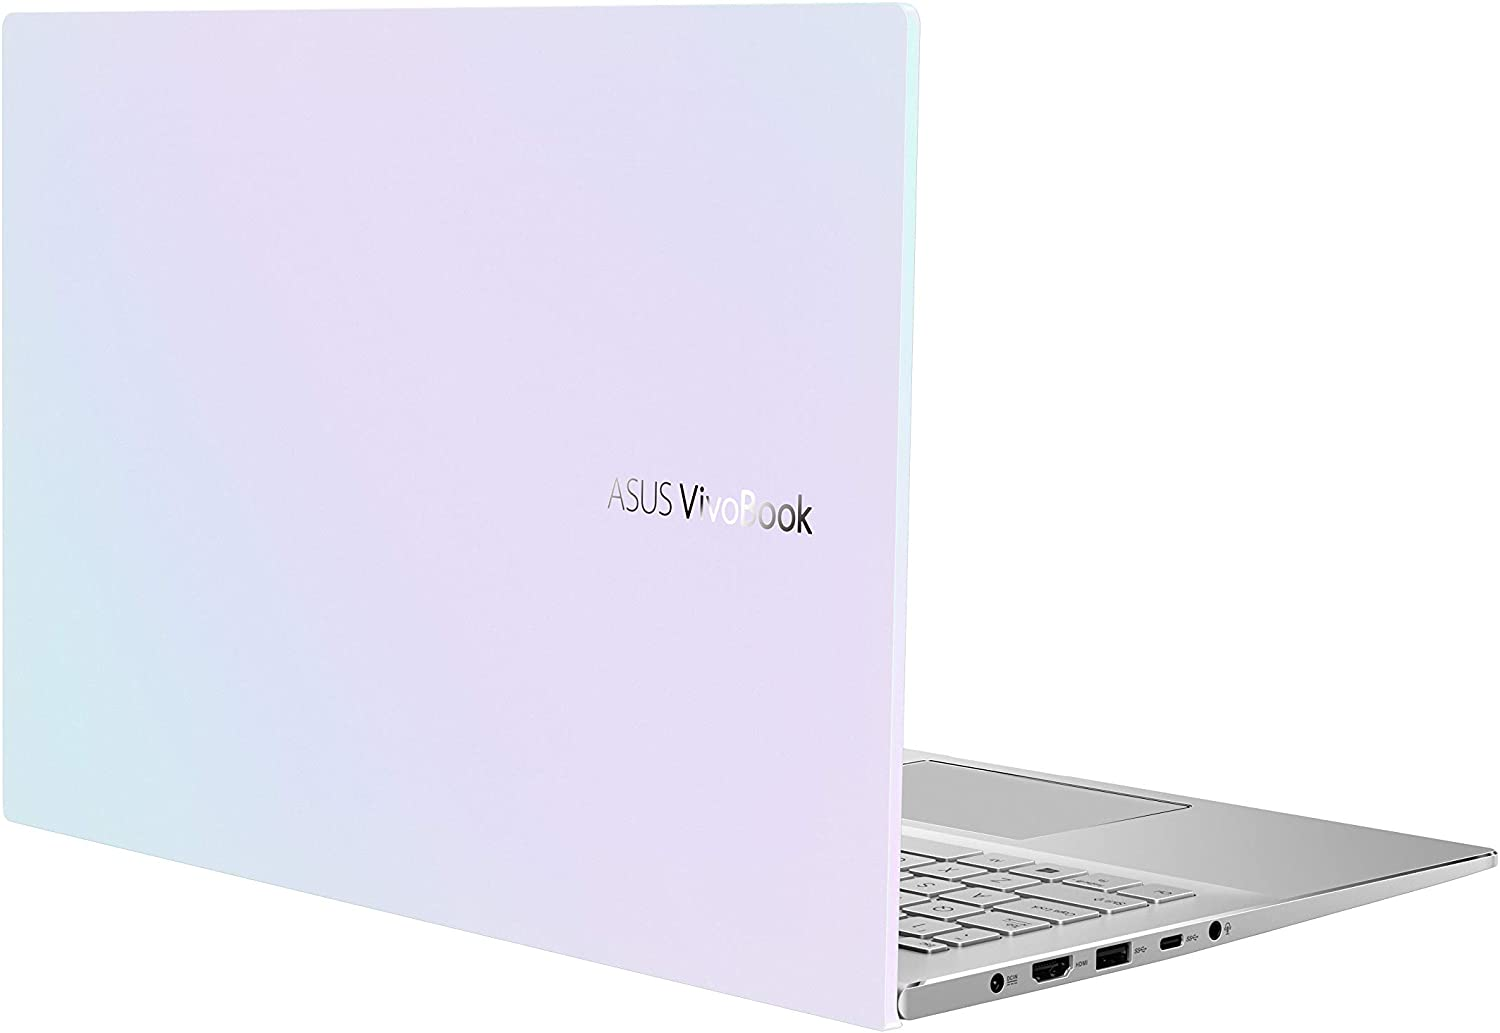 "ASUS VivoBook S15 S533 Thin and Light Laptop, 15.6"" FHD Display, Intel Core i5-10210U CPU, 8GB DDR4 RAM, 512GB PCIe SSD, Windows 10 Home, Dreamy White, S533FA-DS51-WH"